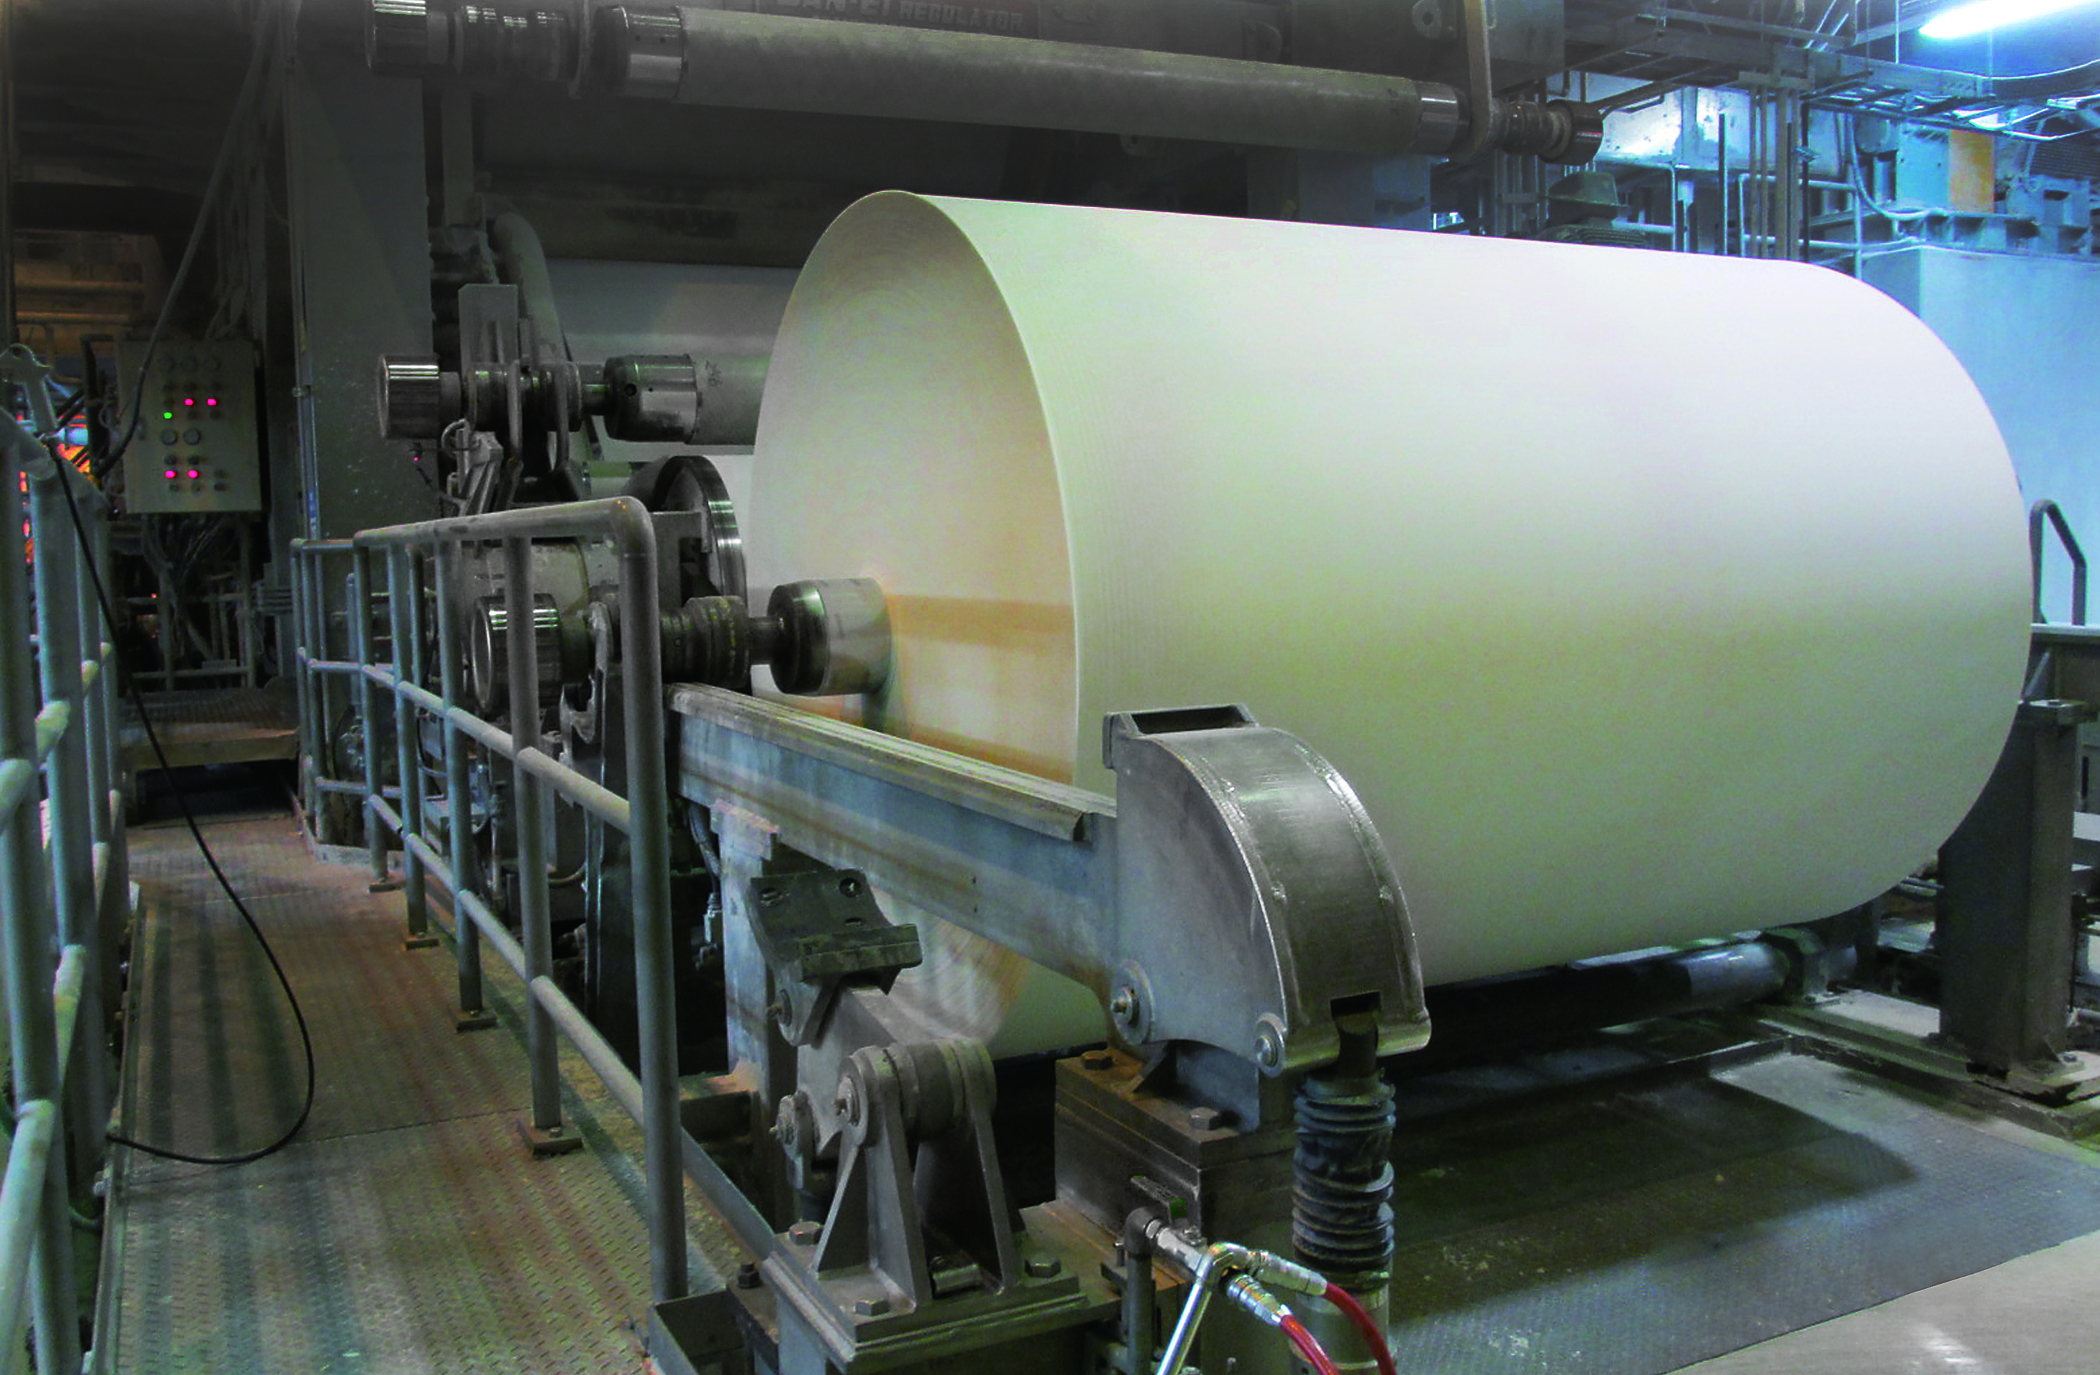 Tsubakimoto delivers power & performance to the Paper industry